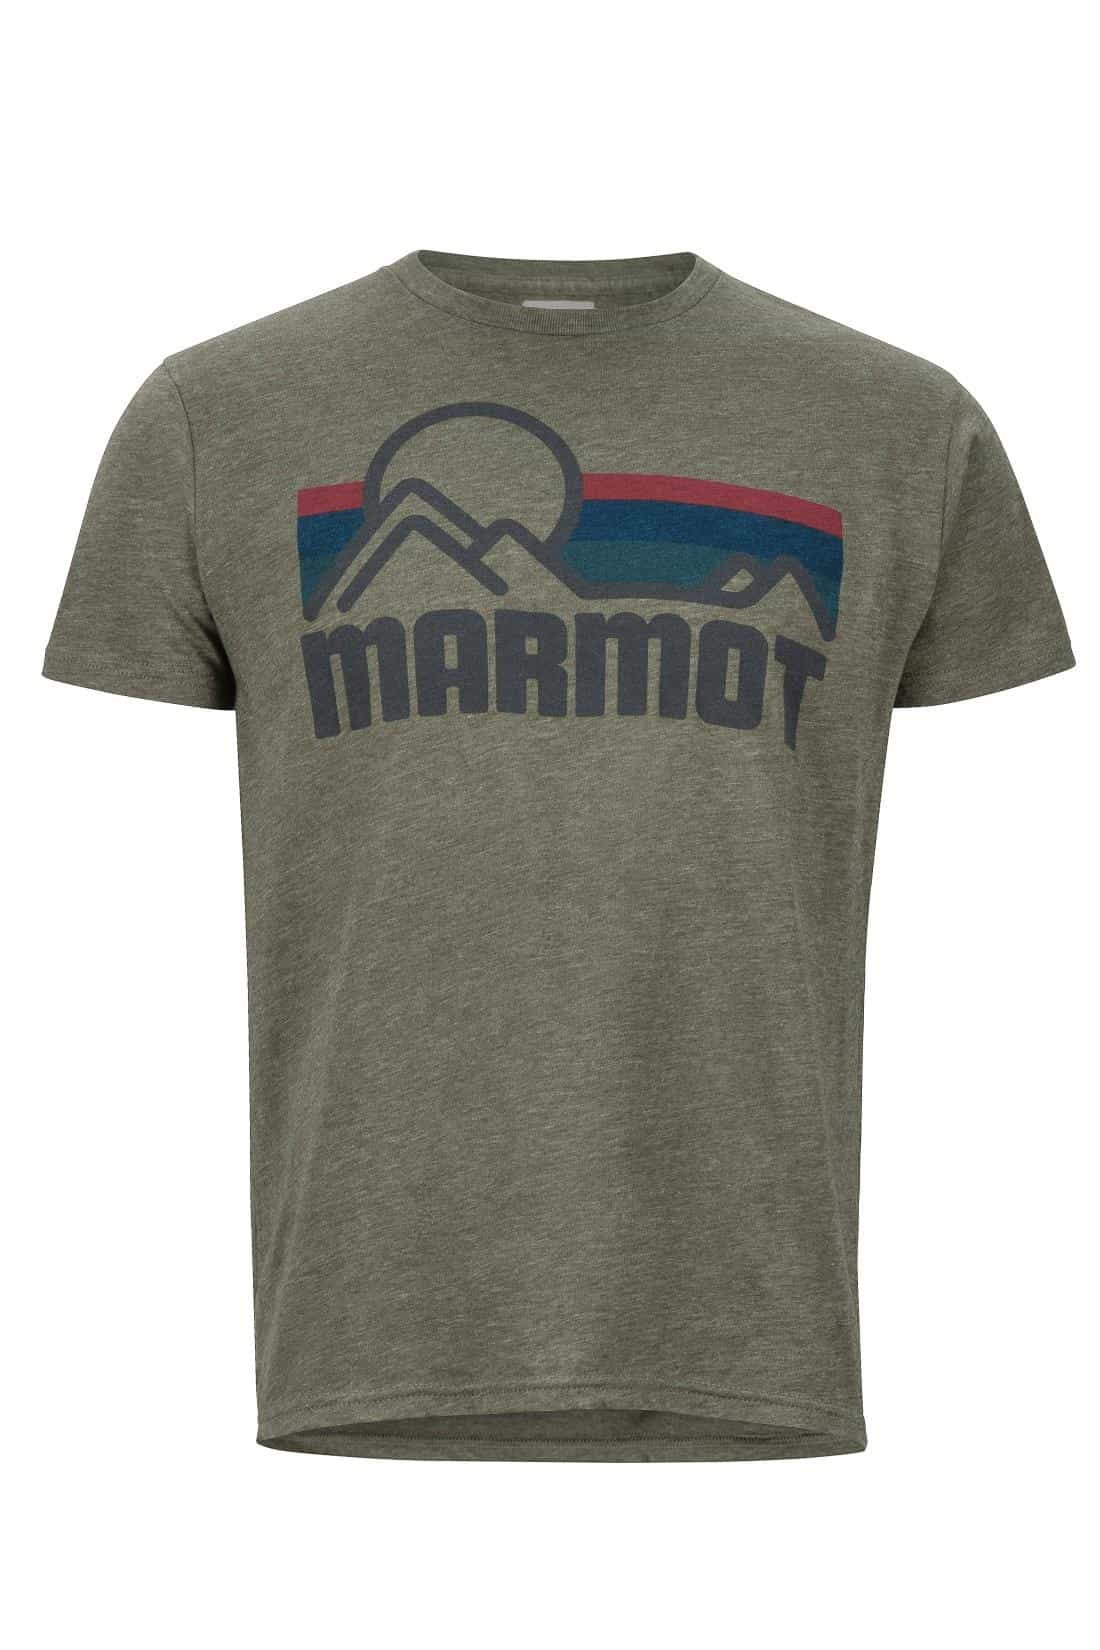 Marmot-Marmot Coastal Tee Short-Sleeve - Men's